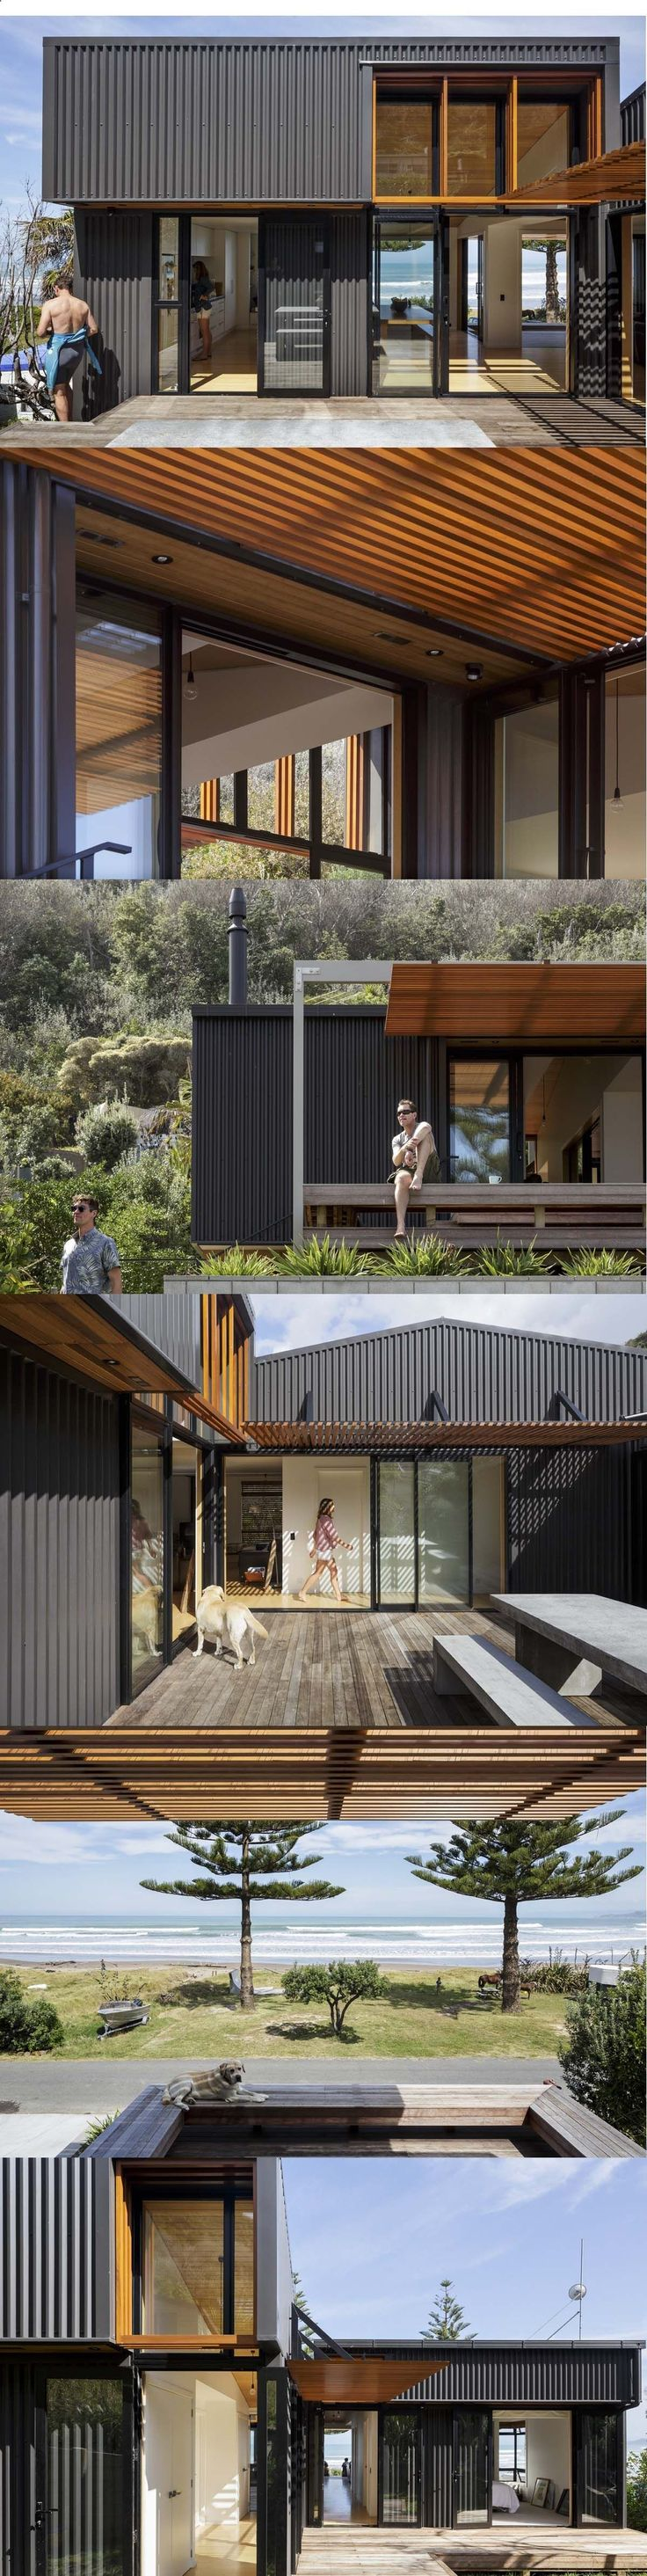 Container house container house interconnecting sheds combine to create beachside family home slightly more